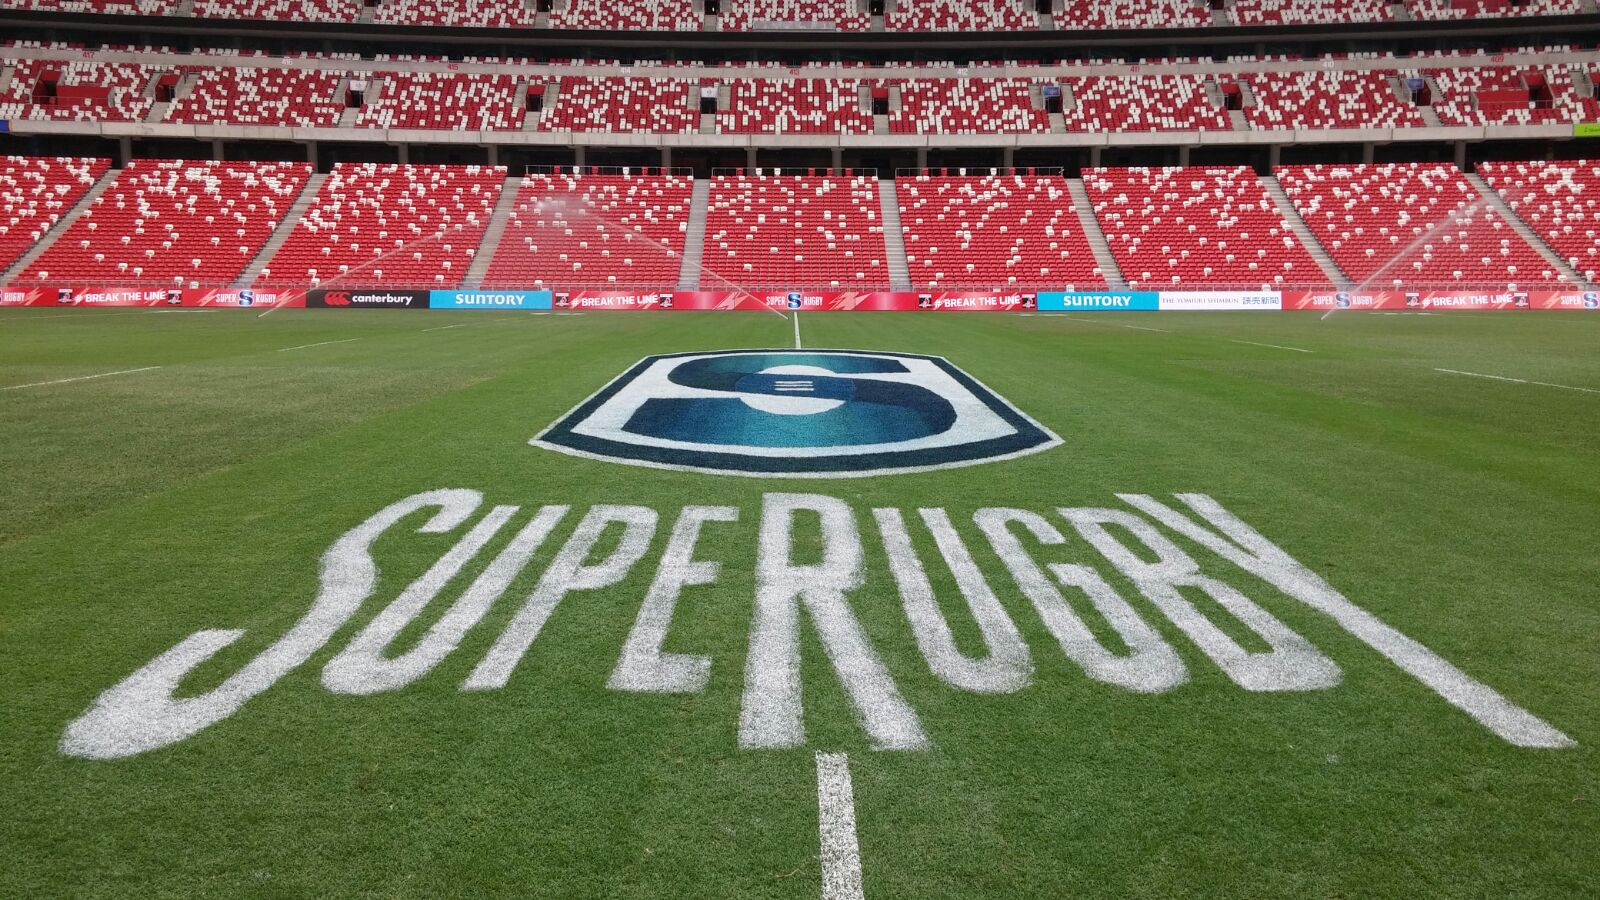 It's @SuperRugby MATCH DAY!! The pitch at SG #NationalStadium is ready to be filled w/ world class sporting action! https://t.co/VdTbvSrYrw